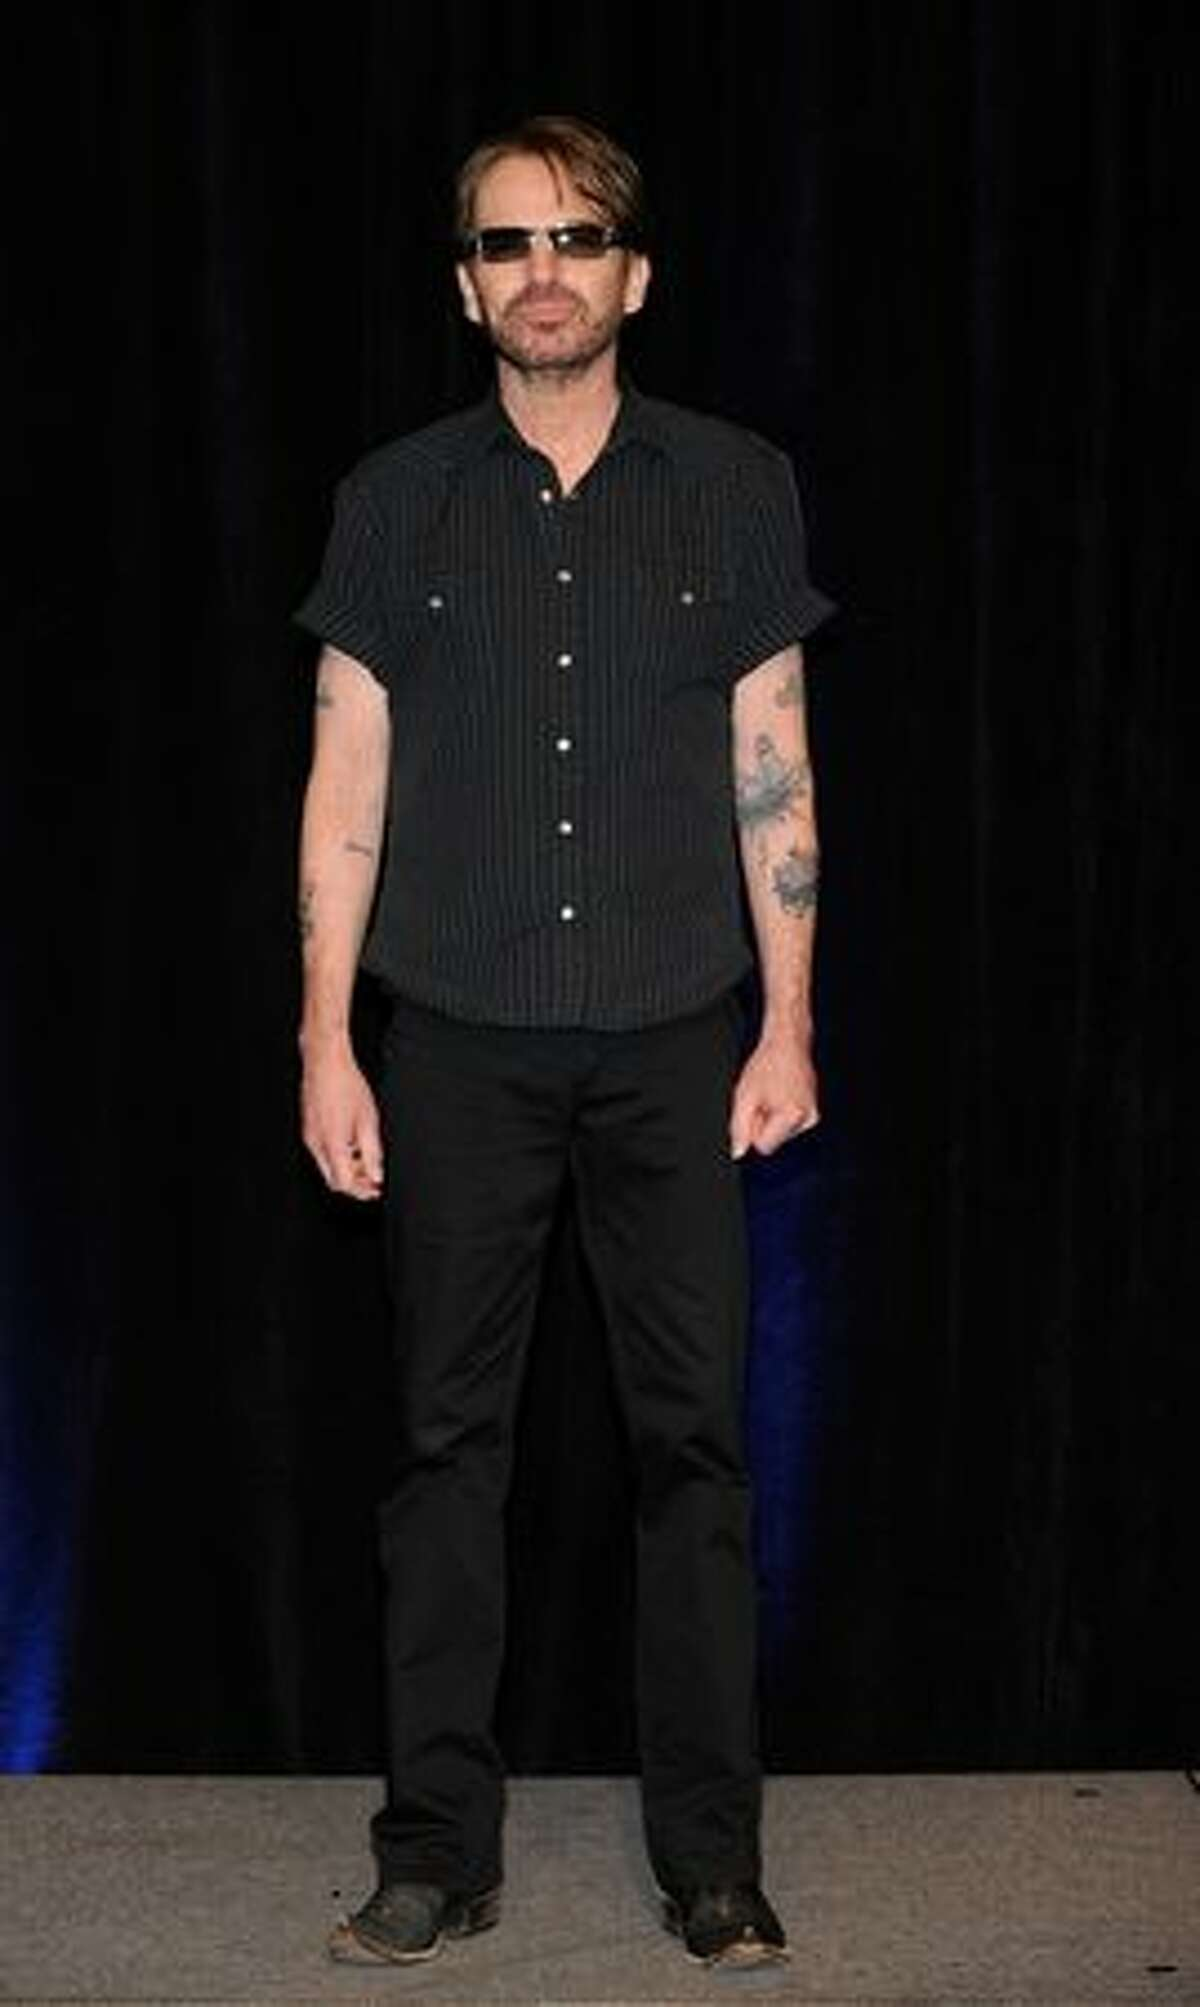 Actor Billy Bob Thornton arrives at the CBS Films presentation to promote his upcoming movie,